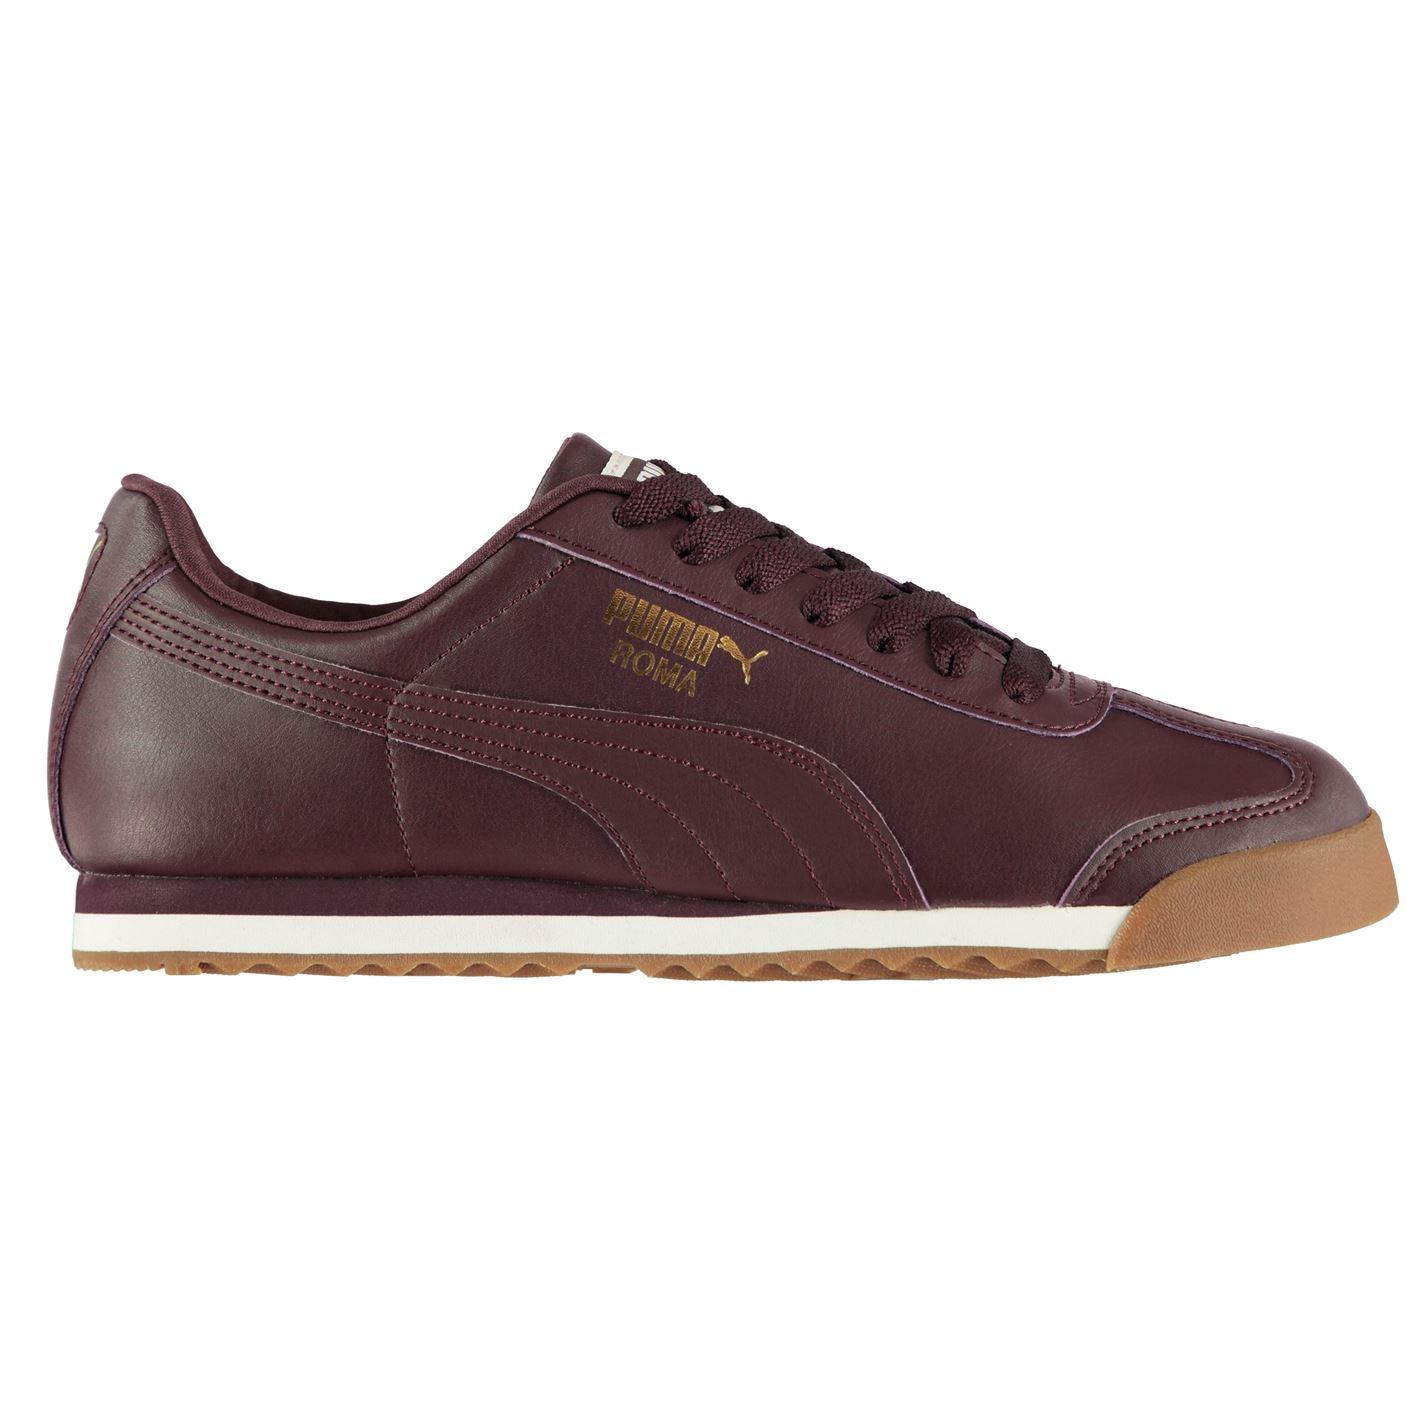 Puma-Roma-Basic-Trainers-Mens-Athleisure-Footwear-Shoes-Sneakers thumbnail 18